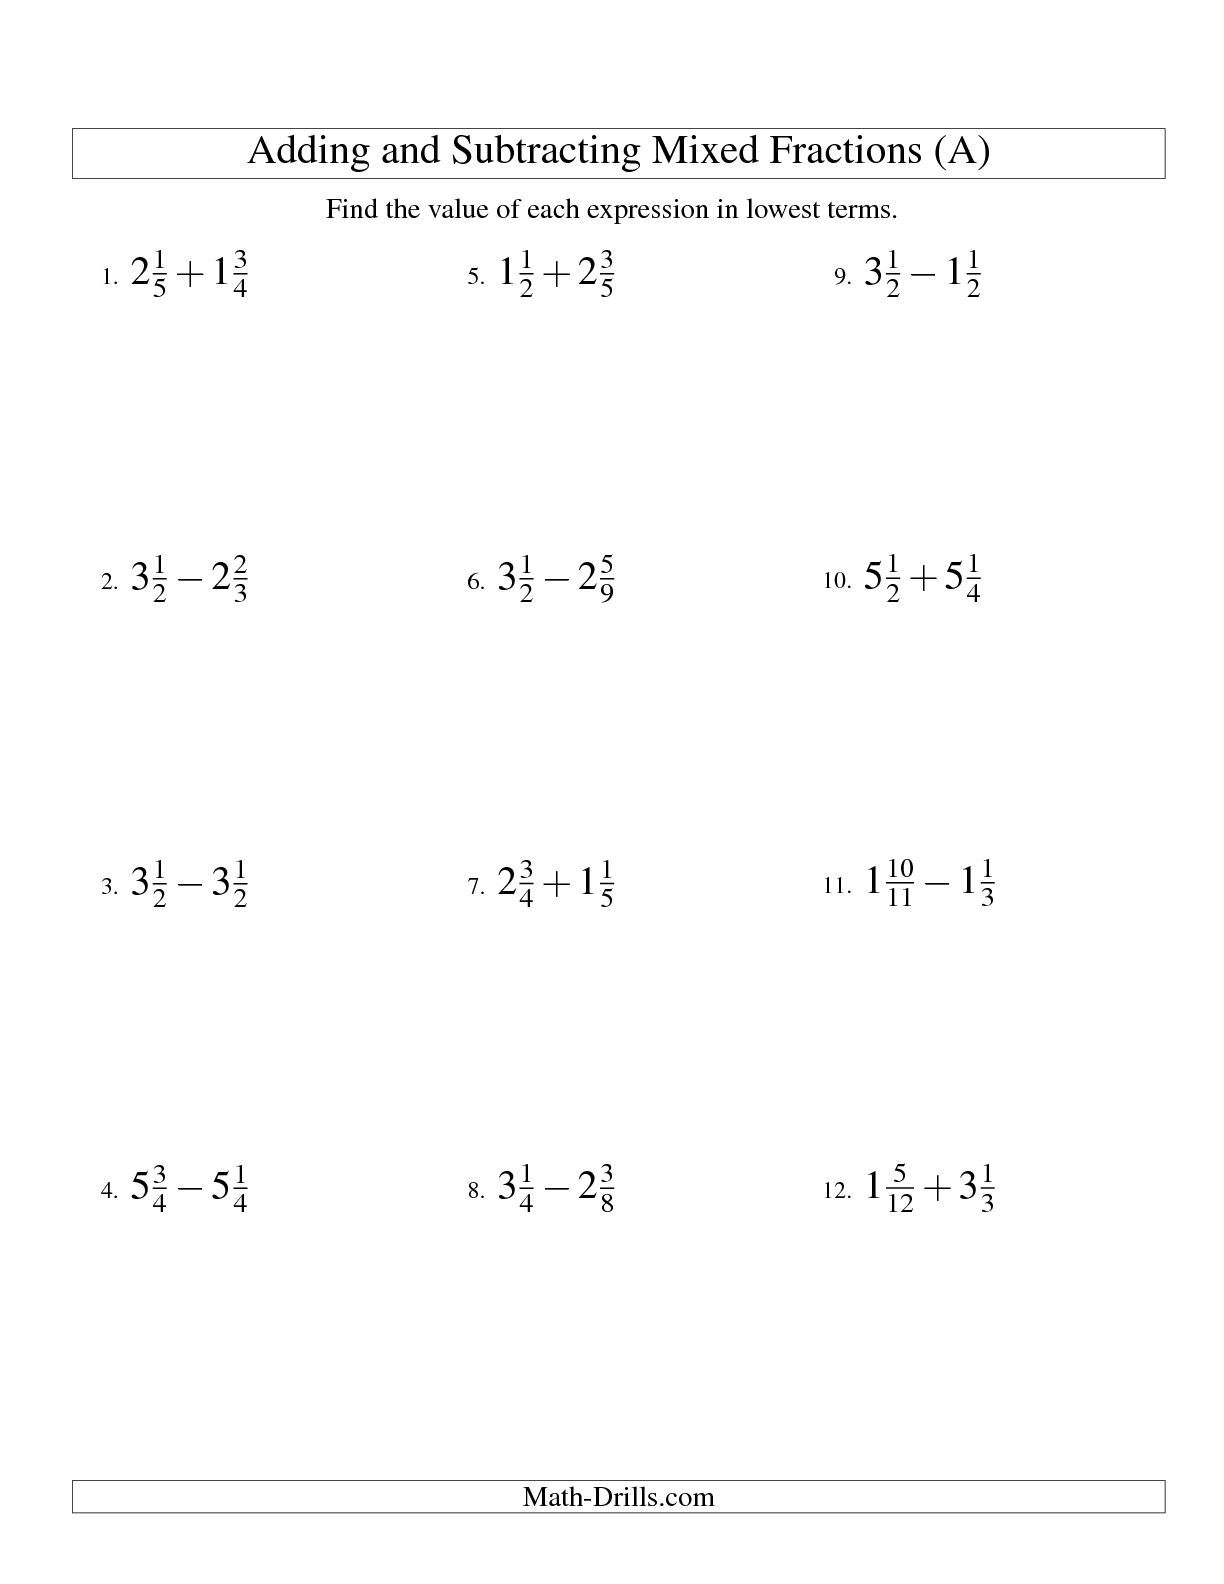 hight resolution of The Adding and Subtracting Mixed Fractions (A) math worksheet from the Fractions  Worksheet page at Math-D…   Fractions worksheets